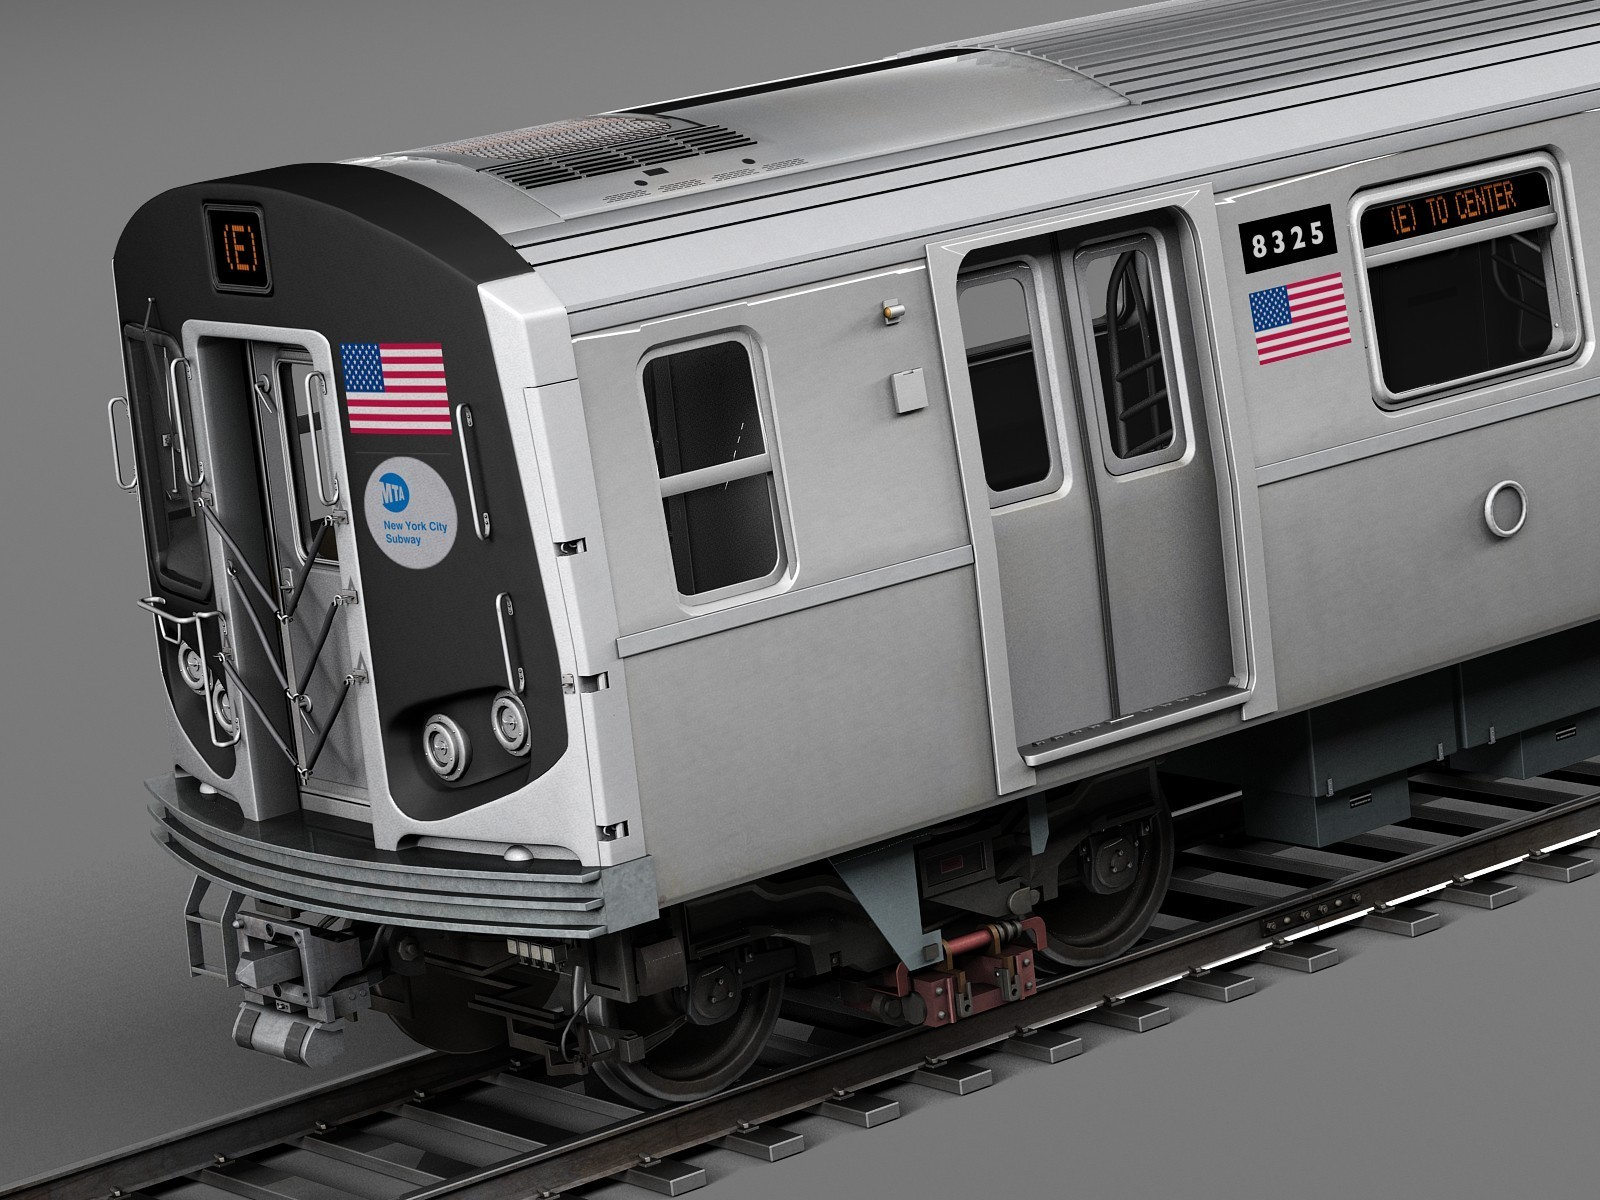 ArtStation - New York Subway Train R160, Valerii Sendetskyi